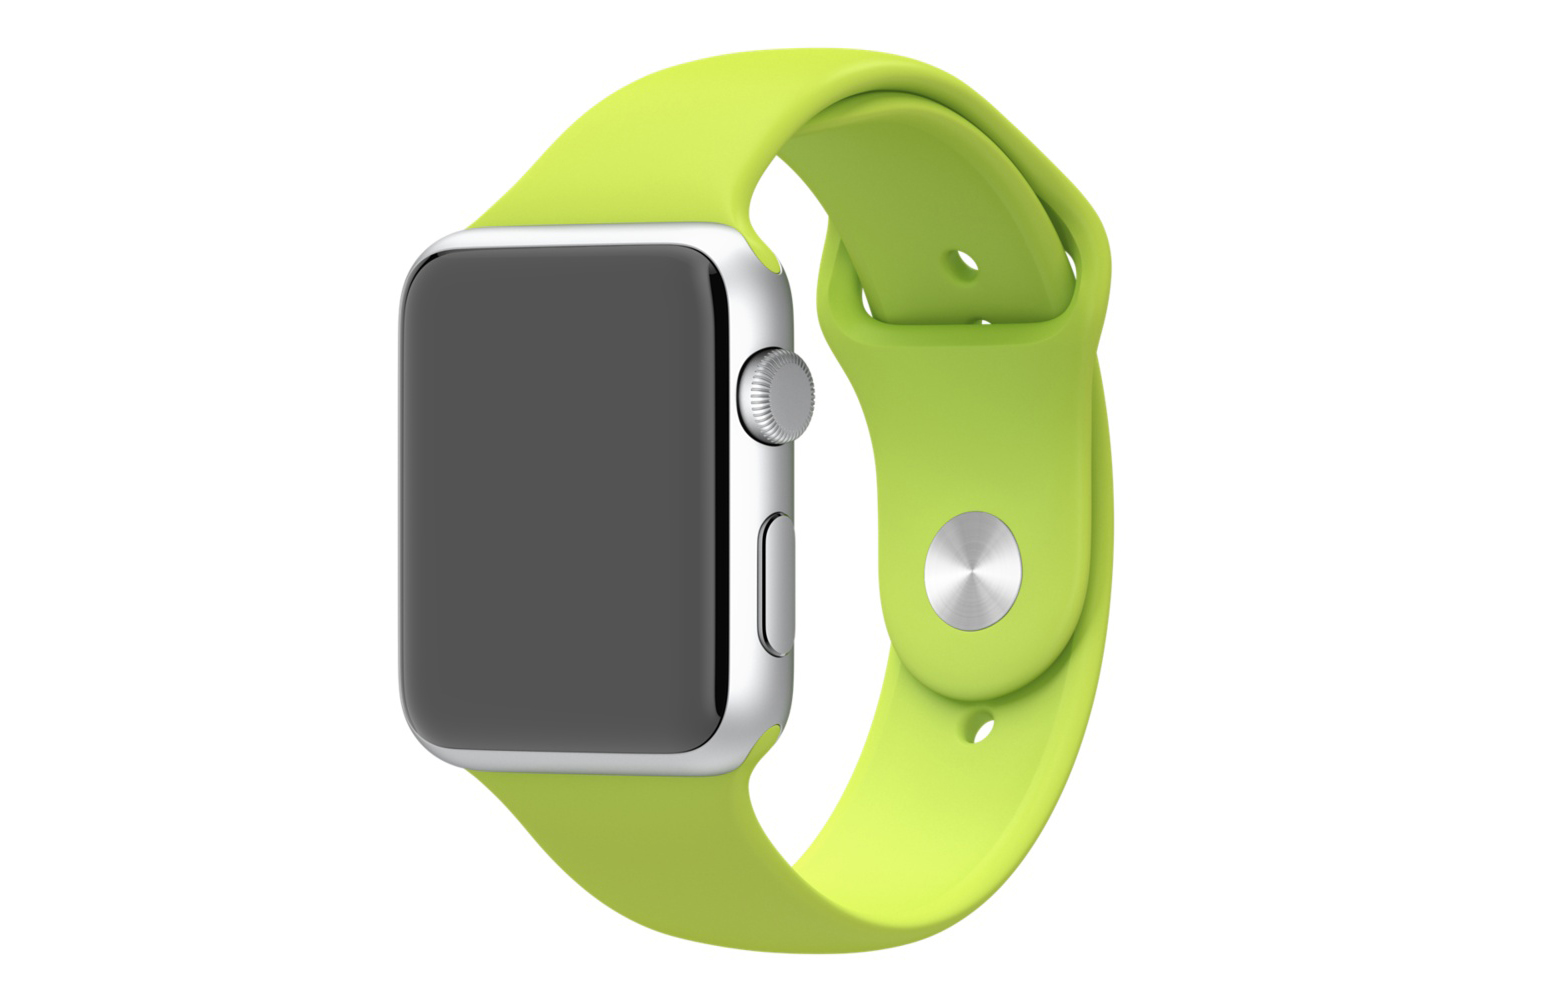 753b20580e78bd SPORT BAND The fluoroelastomer Sport Band is available for the 38mm and  42mm Watches in a variety of colors. Each sell for $49.